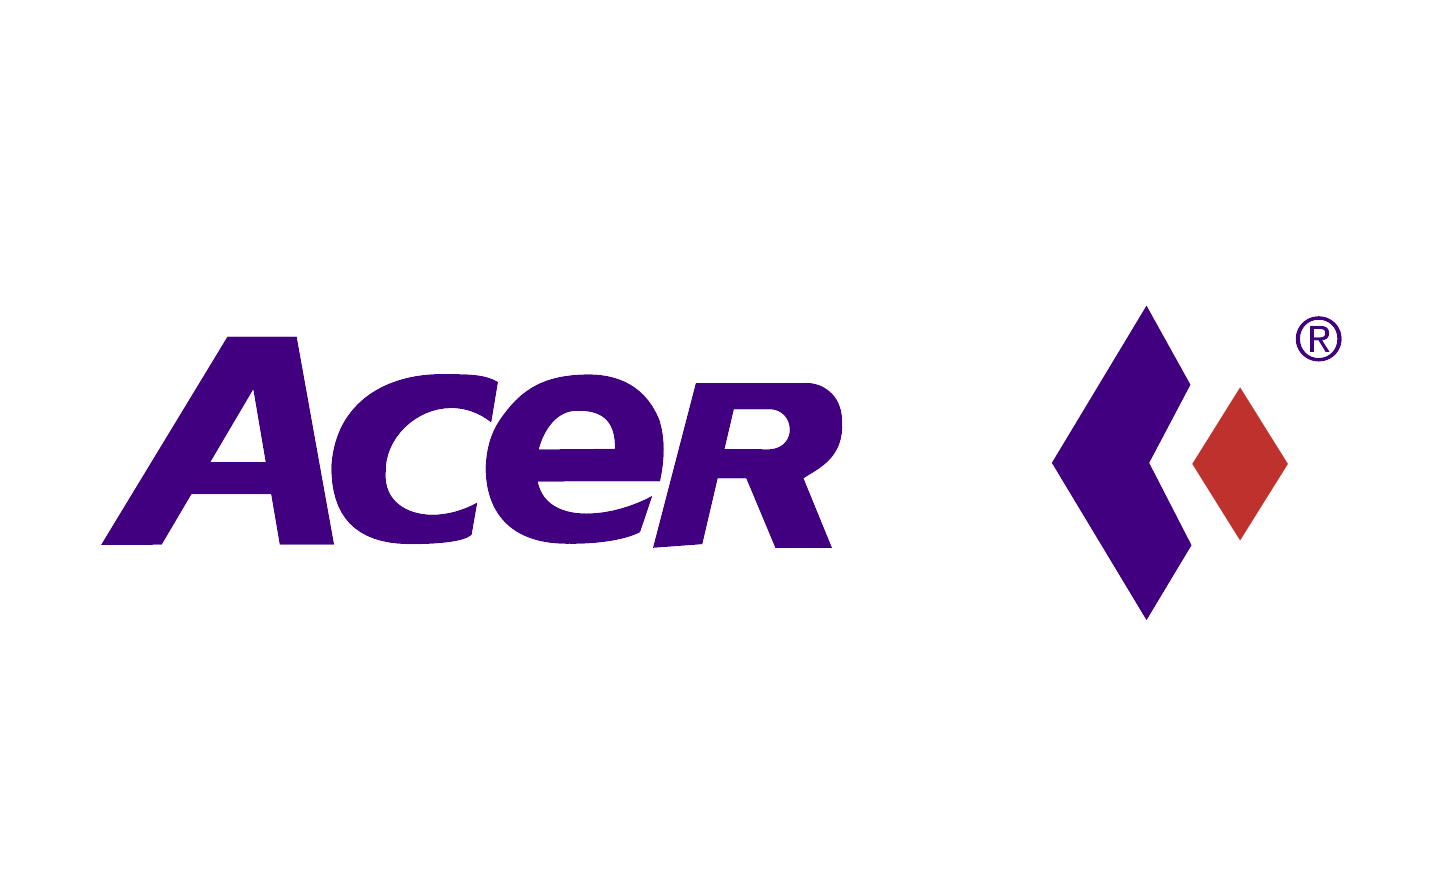 Acer Logos Hd Full Hd Pictures